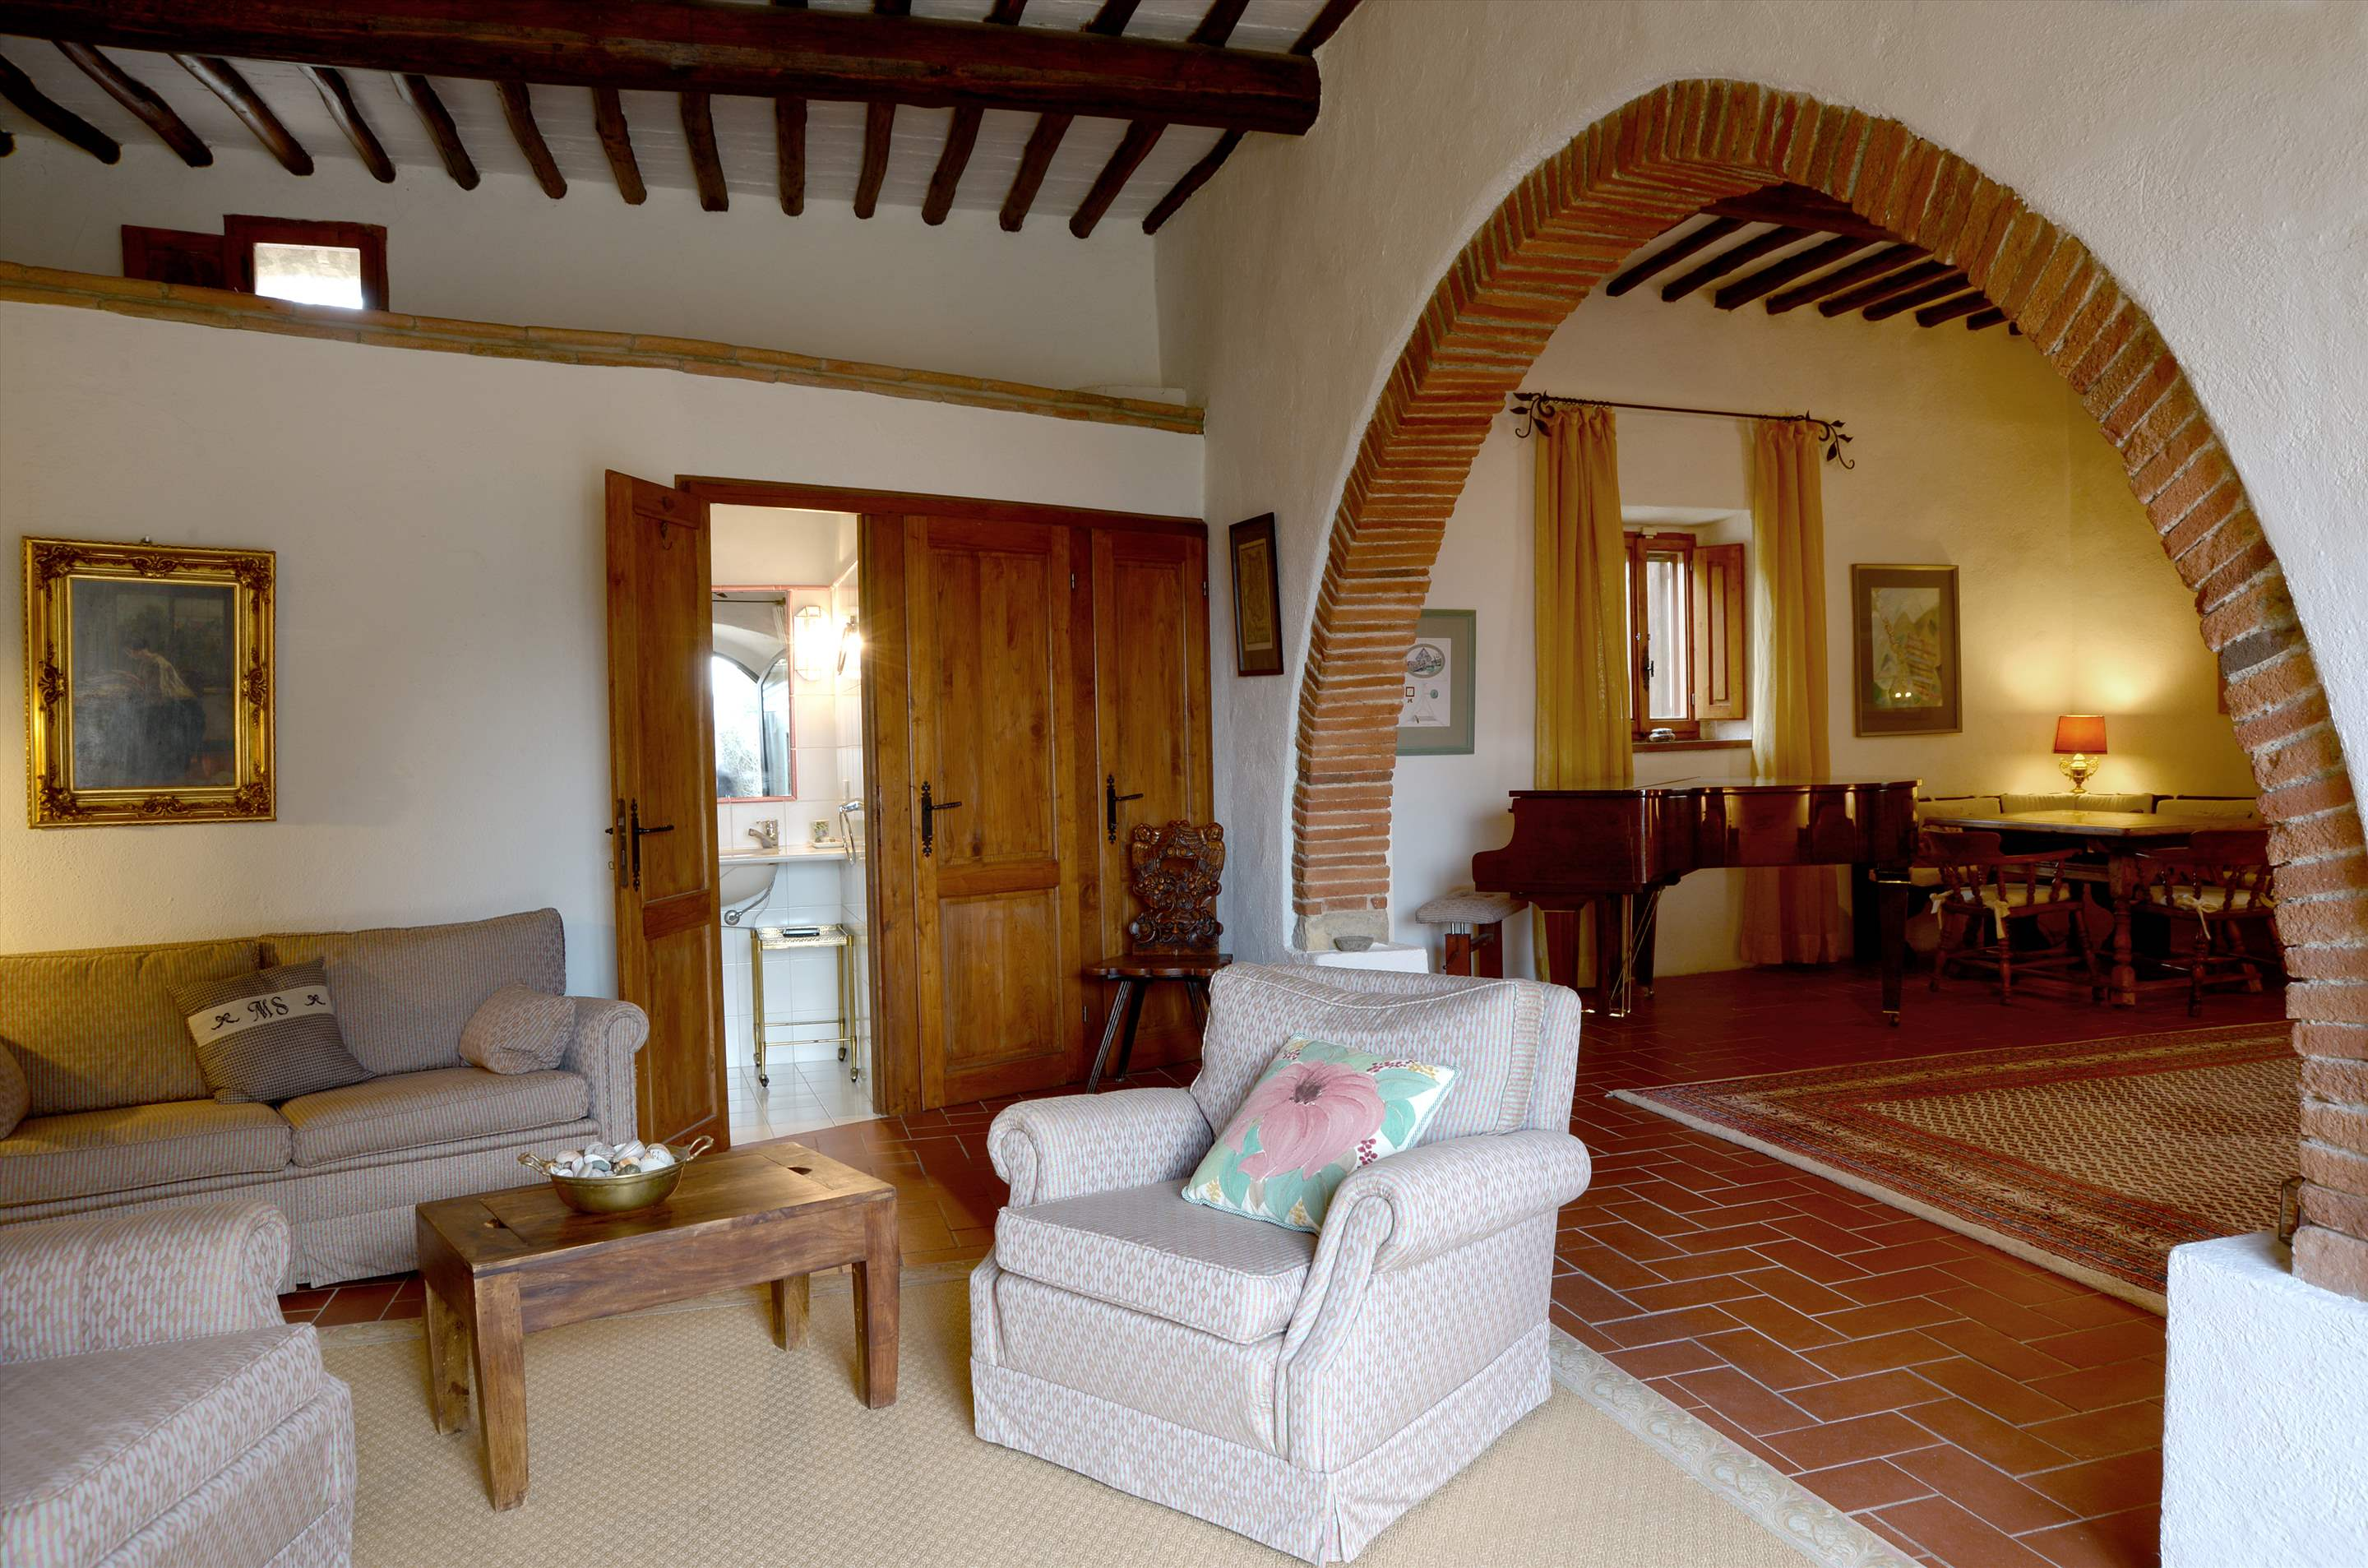 Villa Campana, 5 bedroom villa in Chianti & Countryside, Tuscany Photo #13